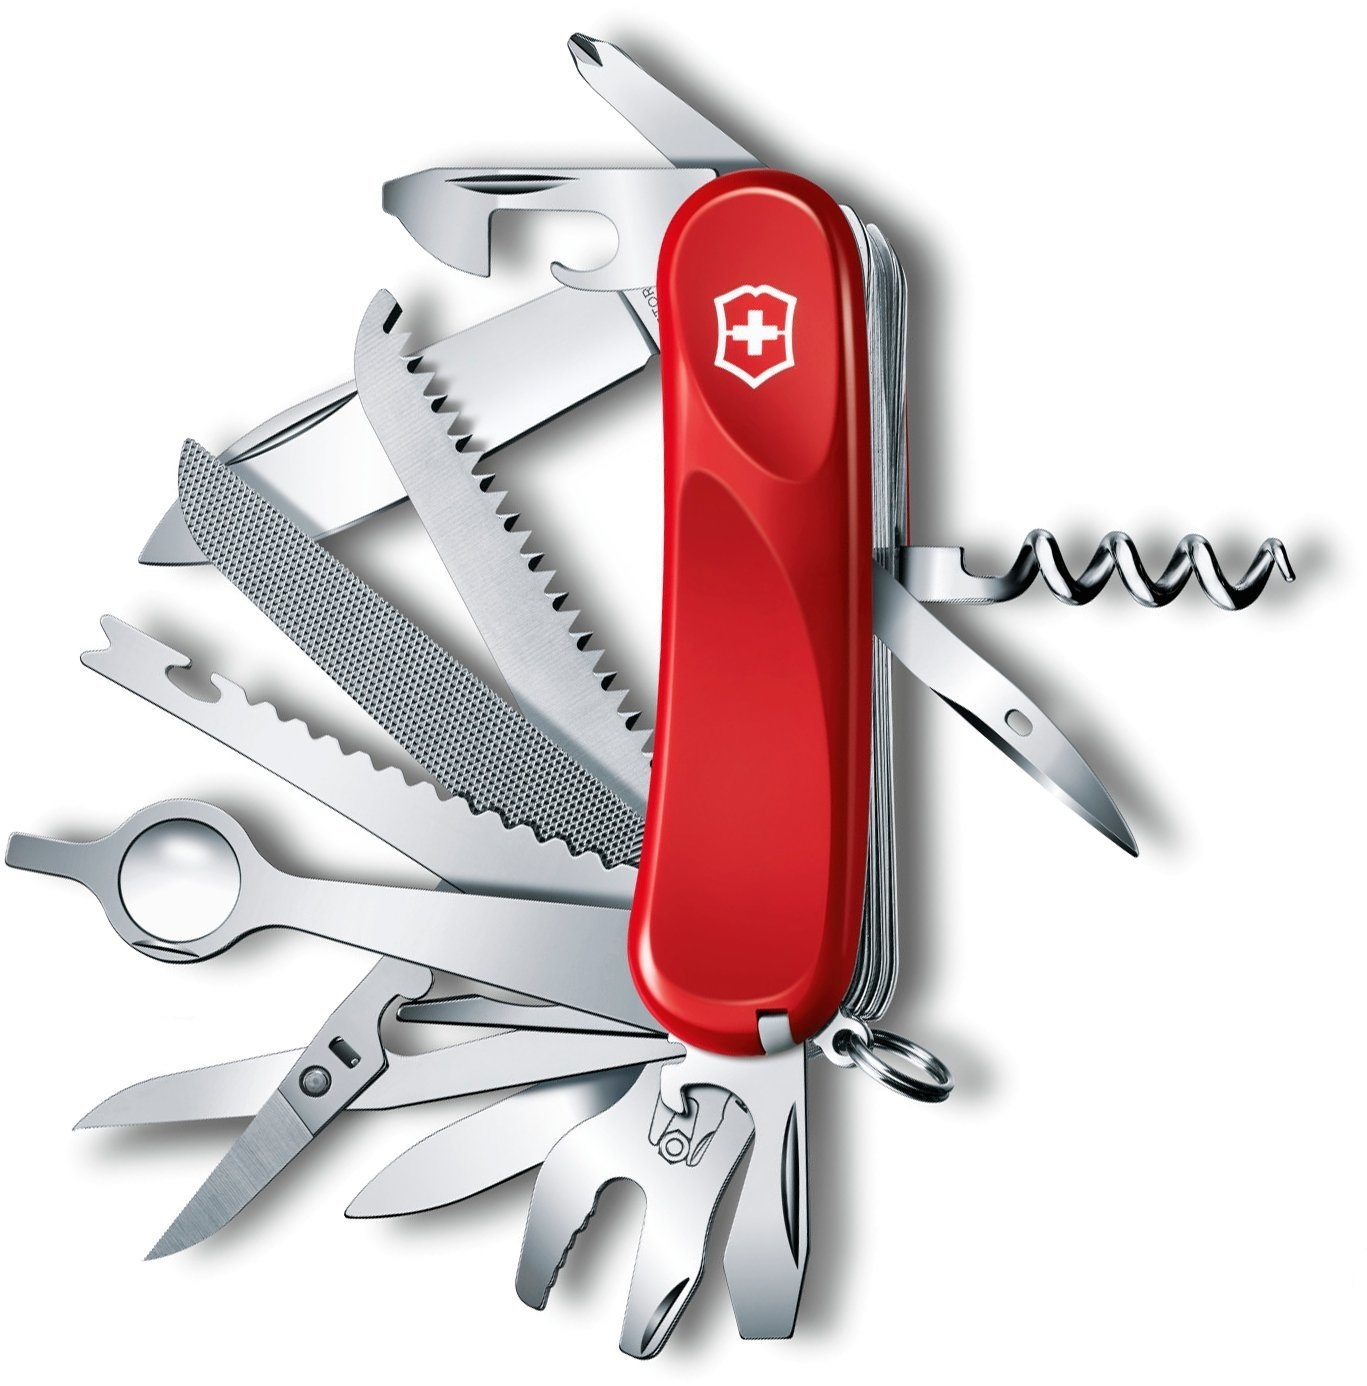 victorinox_delmont_collection_evolution_28_2.5383.e_2.jpg